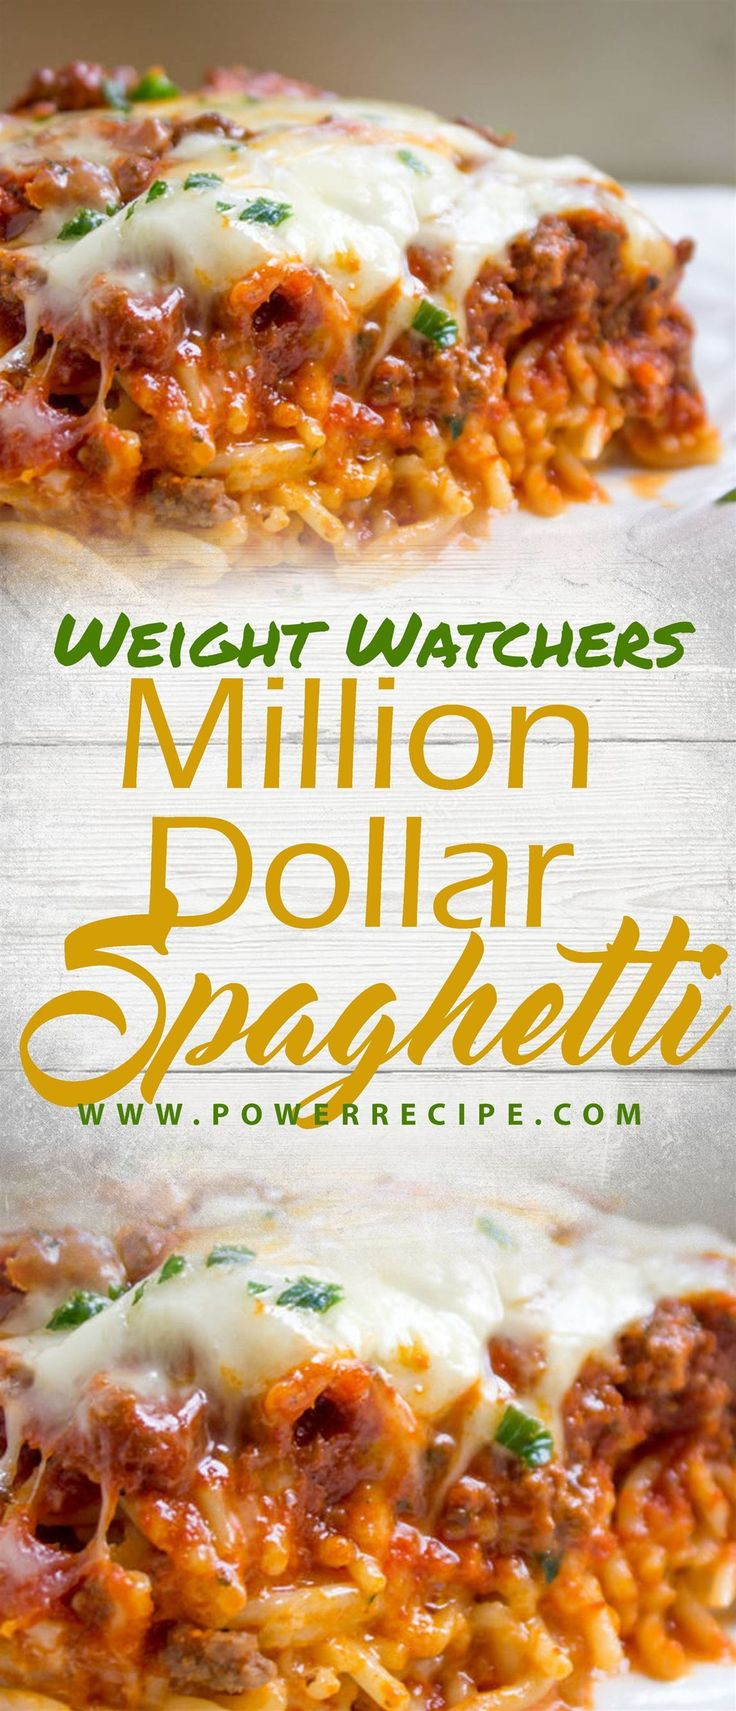 Million Dollar Spaghetti – All about Your Power Re…